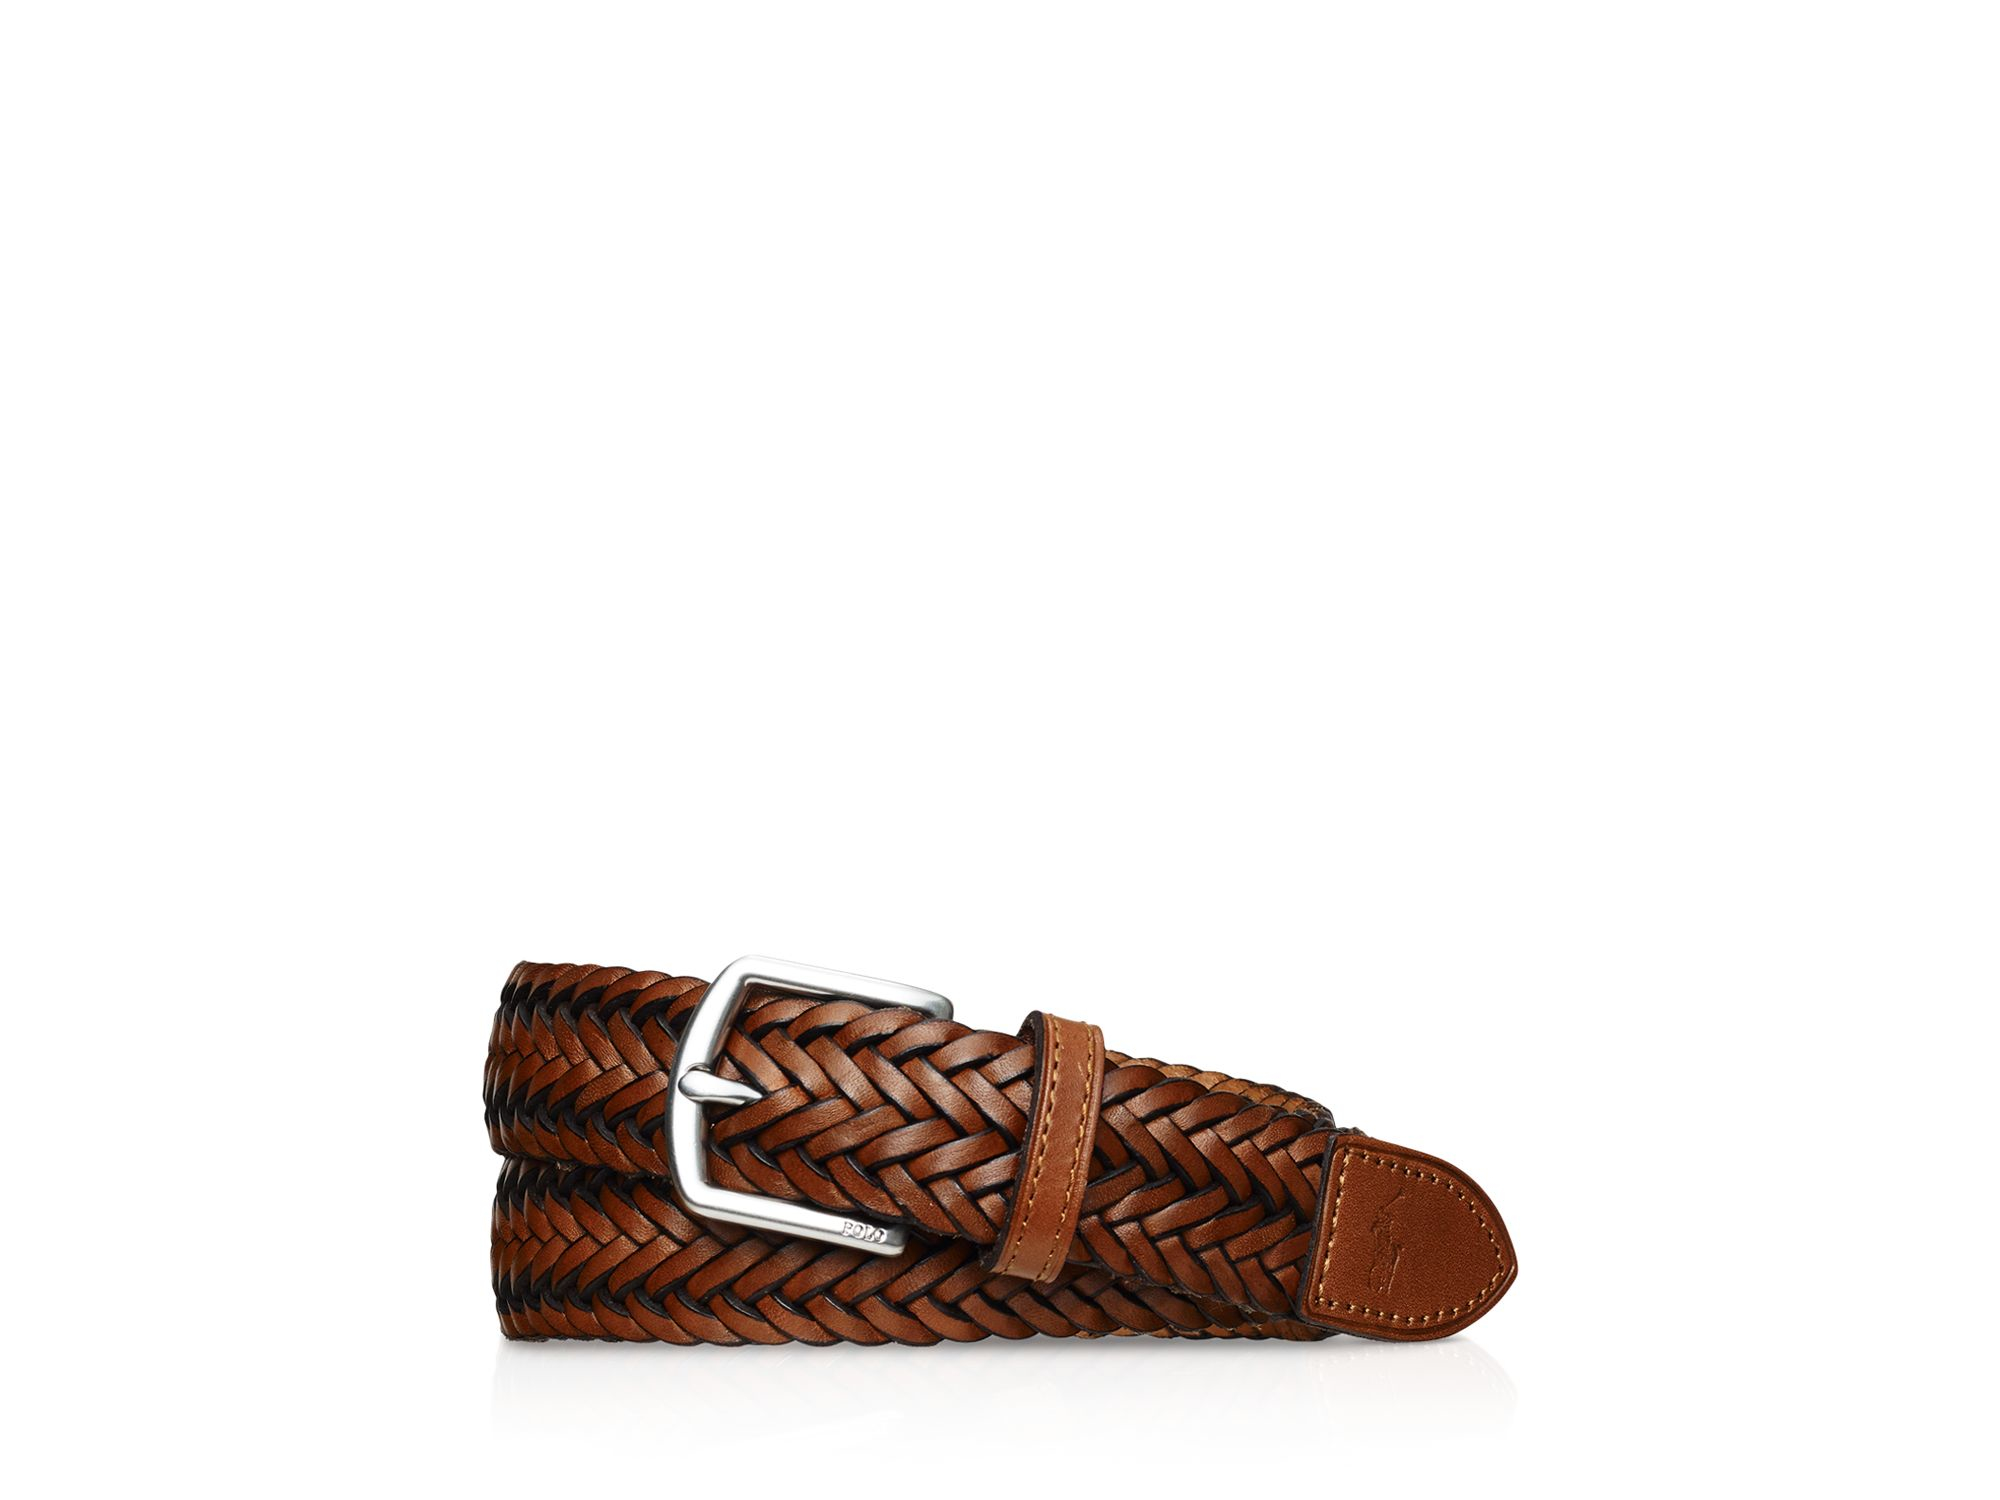 Lyst Polo Ralph Lauren Braided Leather Belt In Brown For Men